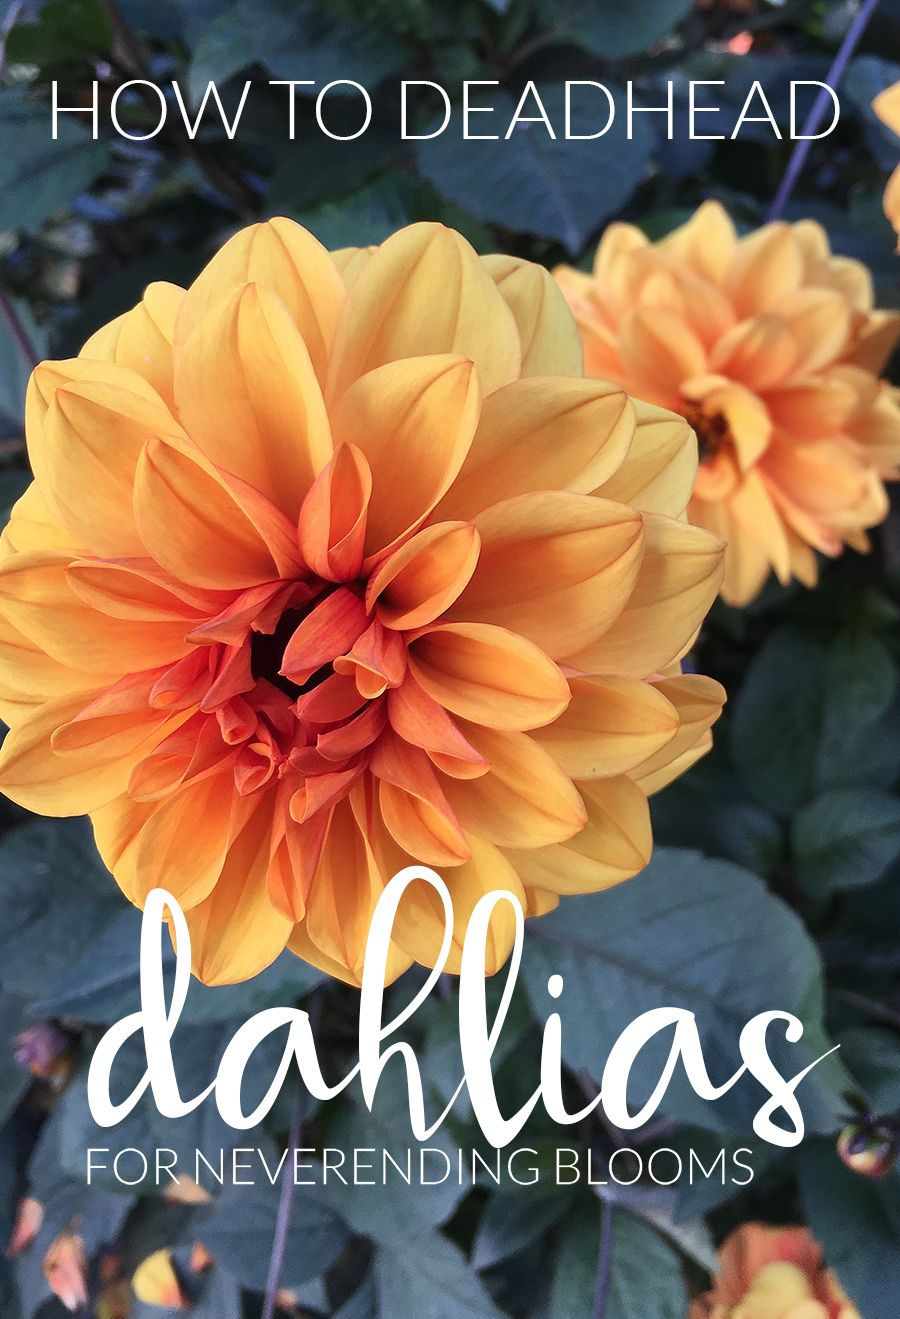 How to deadhead dahlias for blooms all season long bulb growing the impatient gardener how to deadhead dahlias for blooms all season long izmirmasajfo